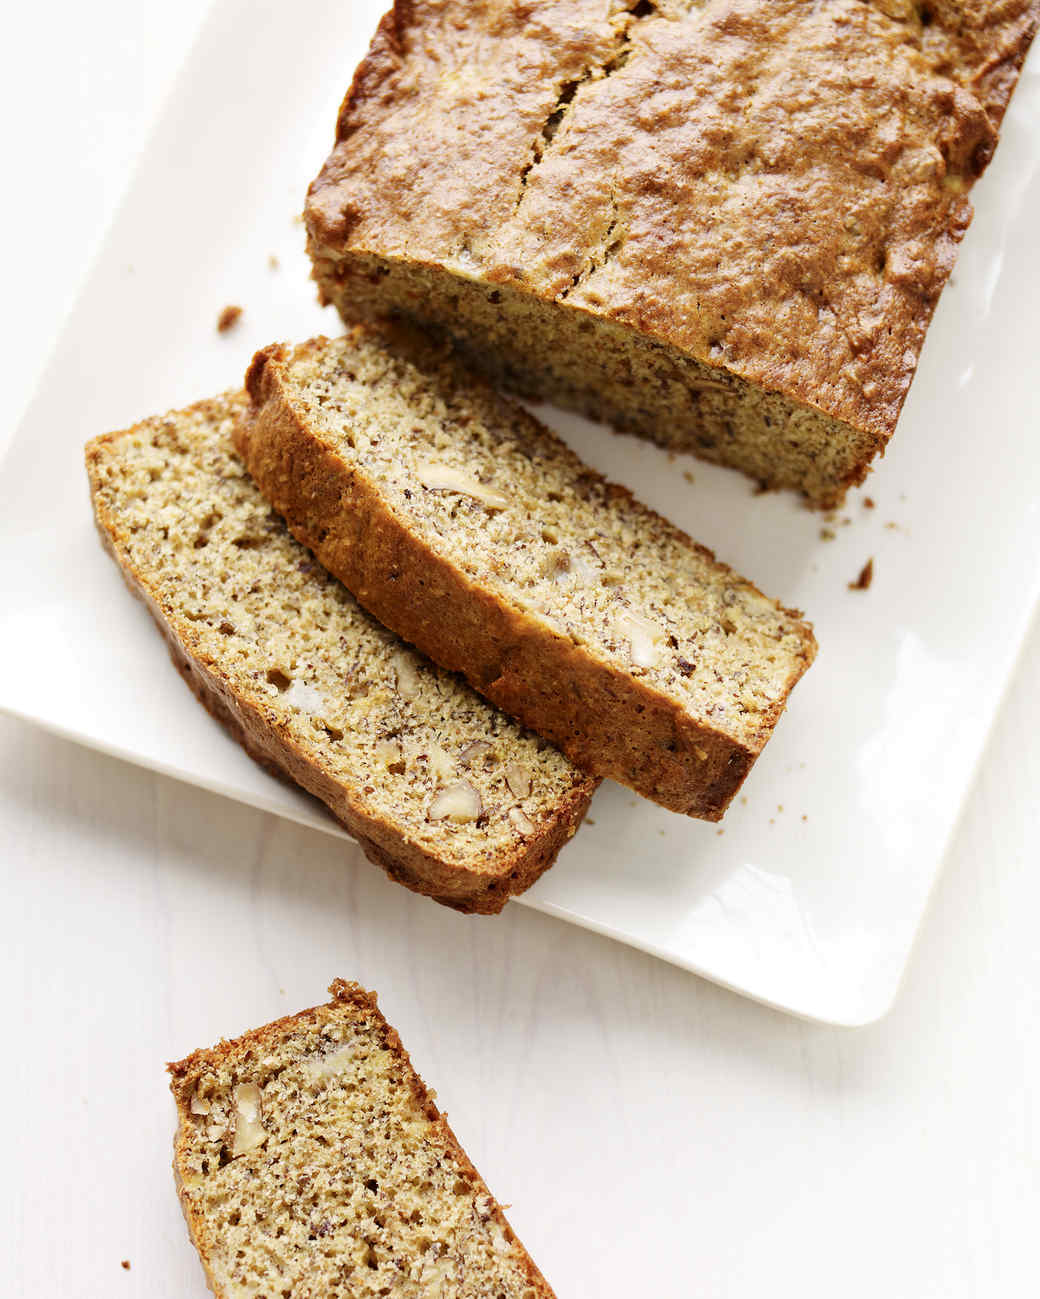 banana flax walnut bread